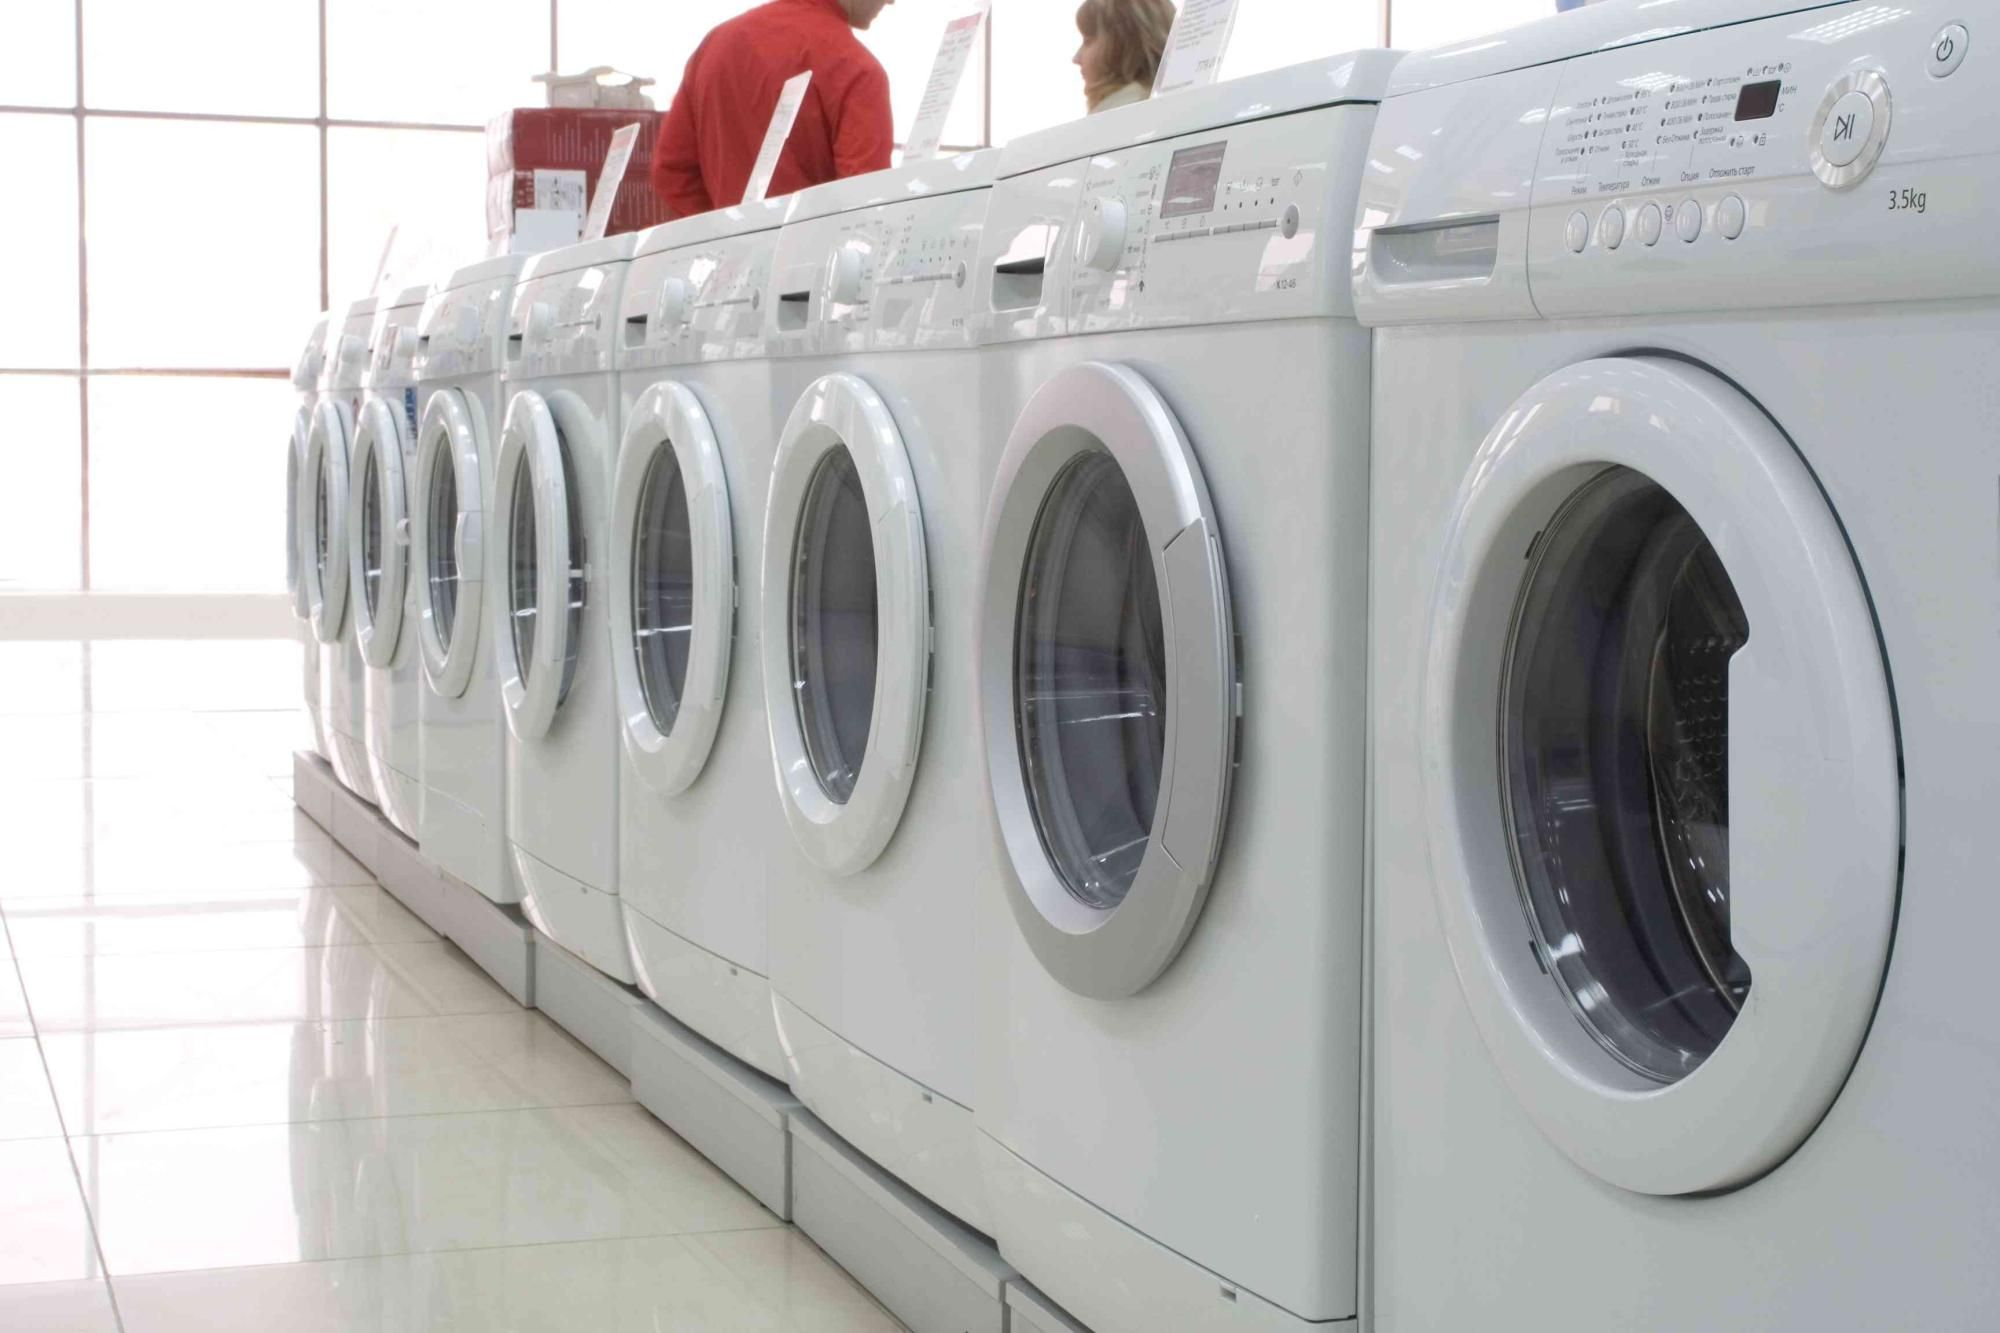 Laundry Facts 9 That Will Surprise You